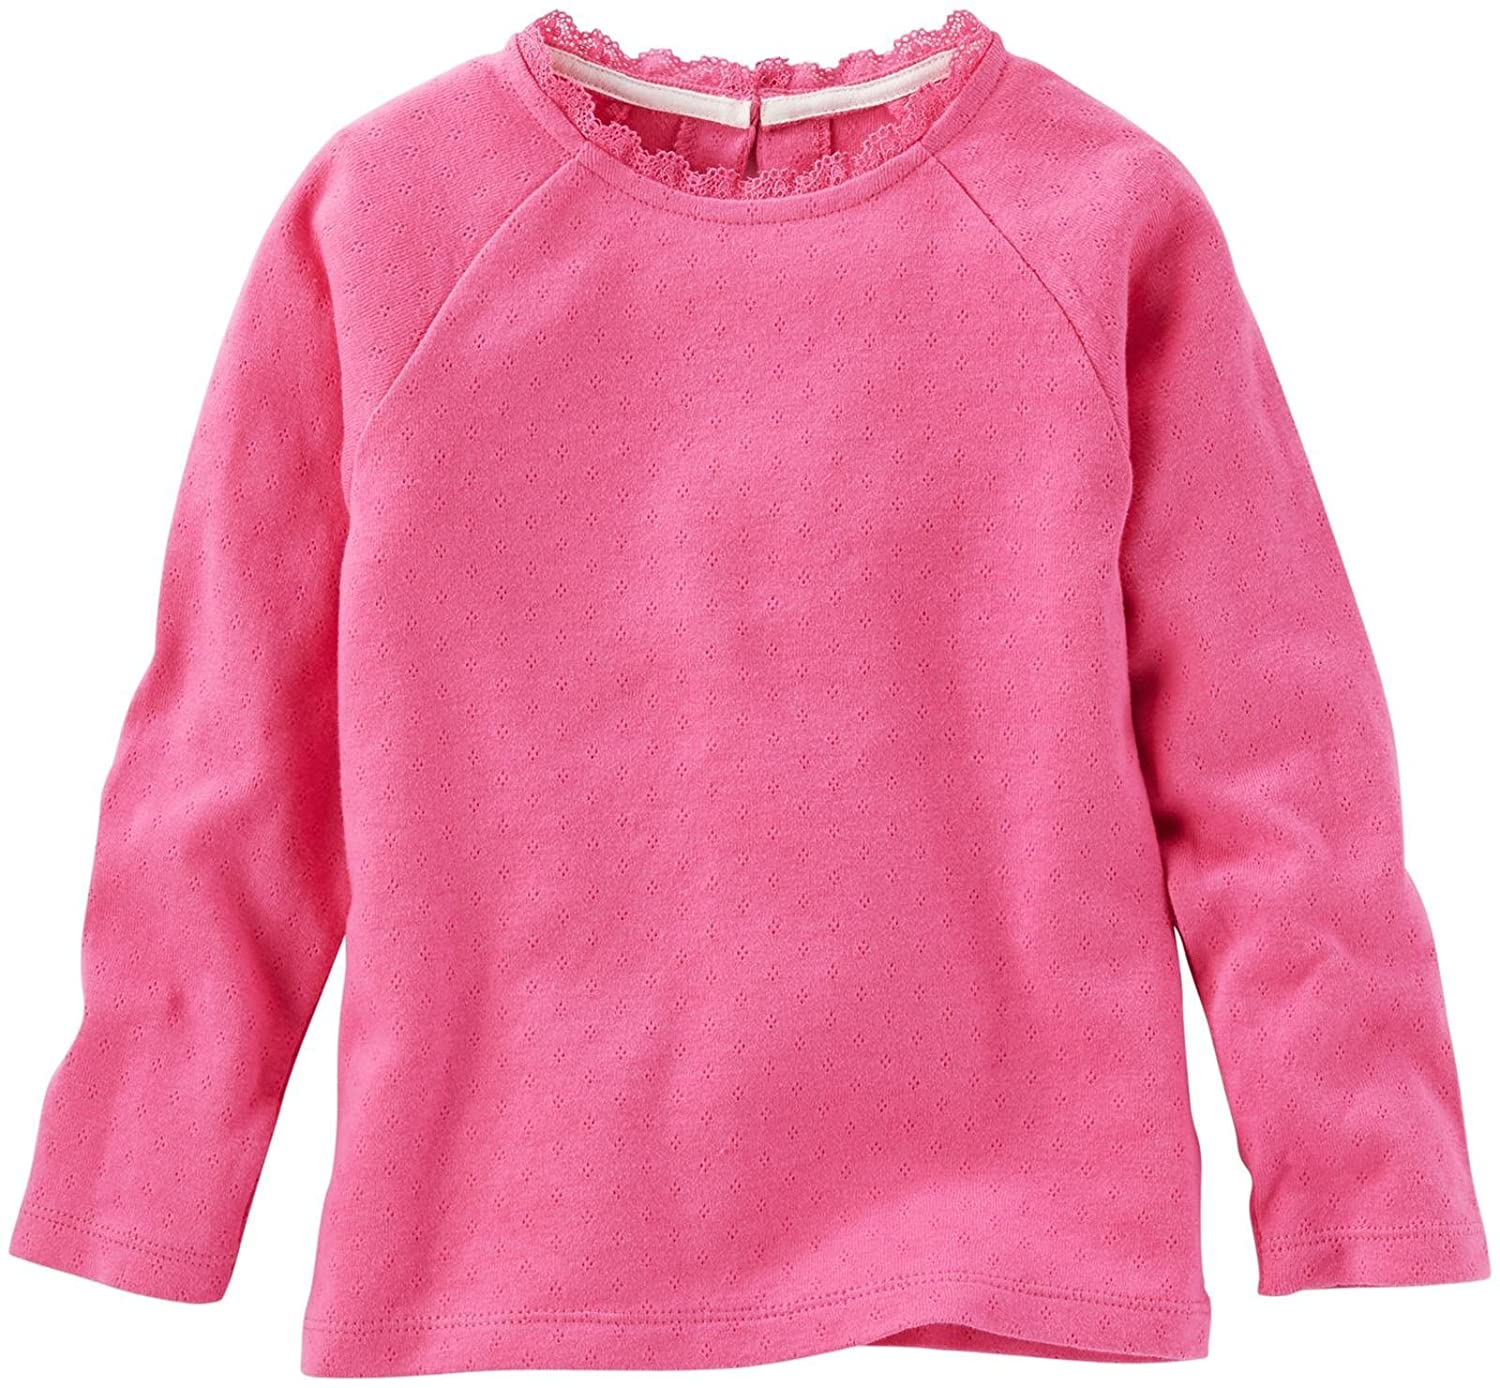 OshKosh Girls Knit Fashion Top 21424012 Pink 2T OshKosh BGosh 21424012-Pink-2T